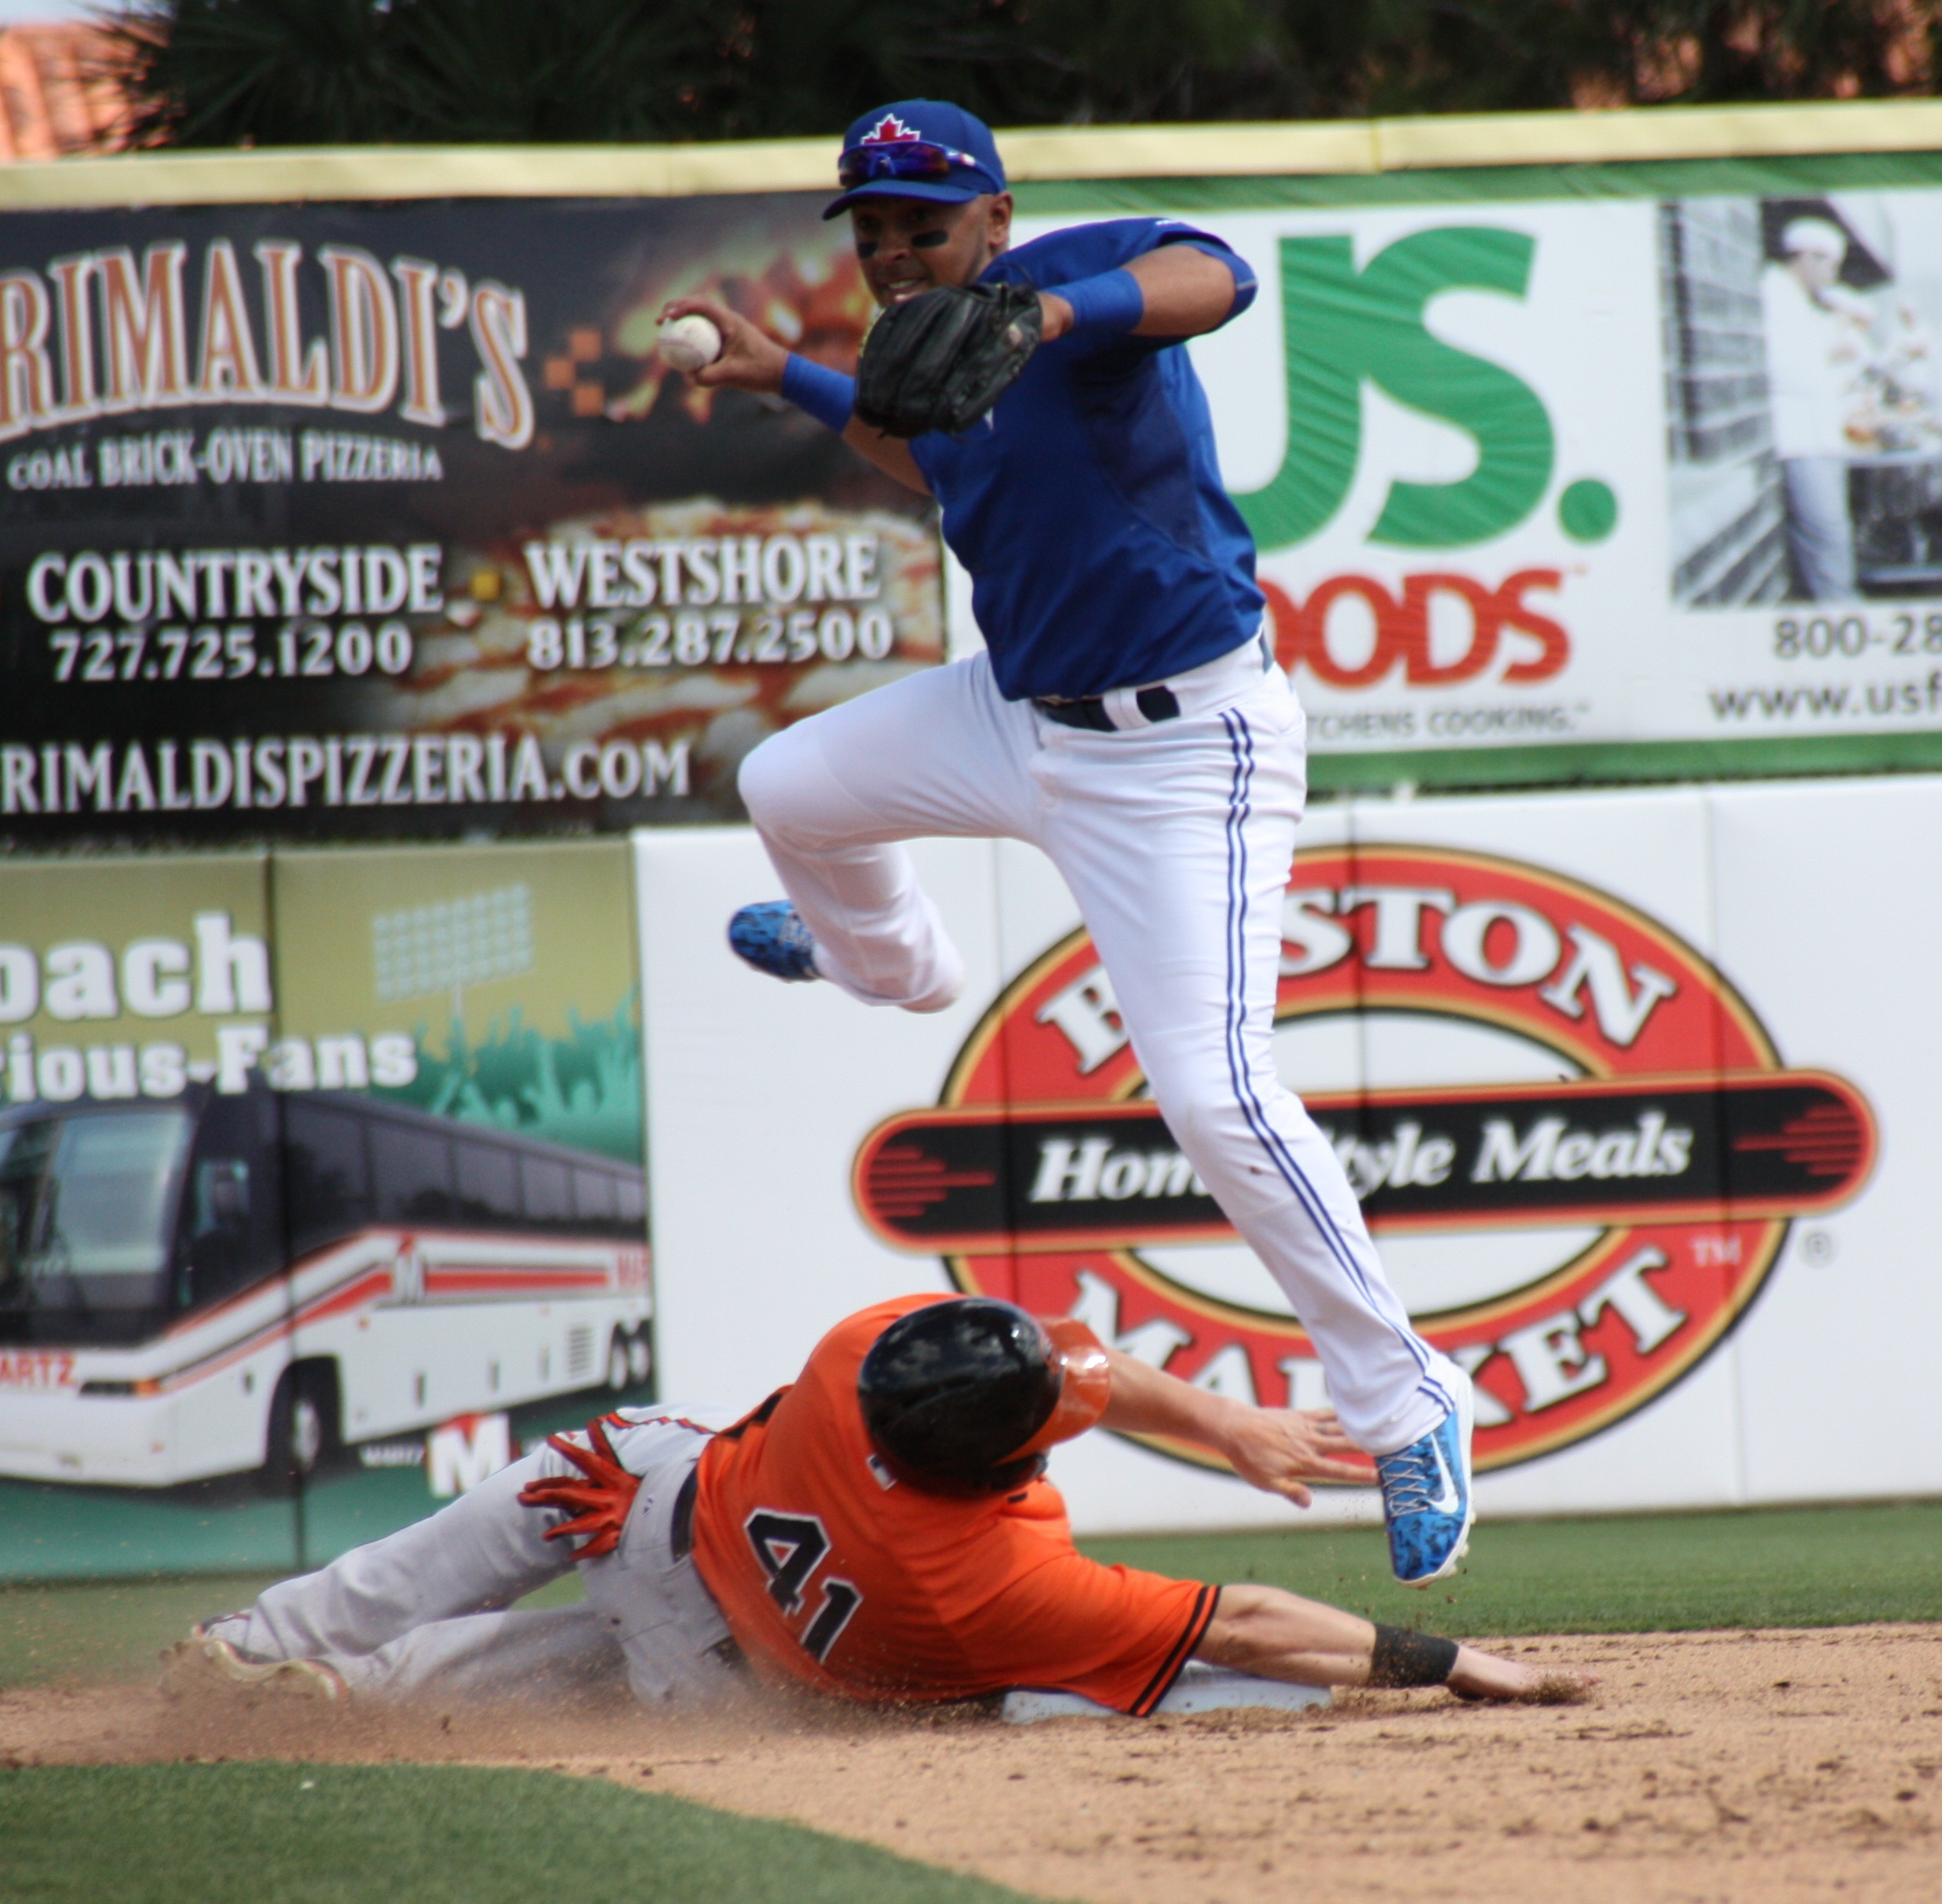 Maicer Izturis can't complete the double play in the top of the sixth inning but still gets the force out on Oriole Chris Parmelee at second as the Blue Jays prevail 5-3 (EDDIE MICHELS PHOTO)